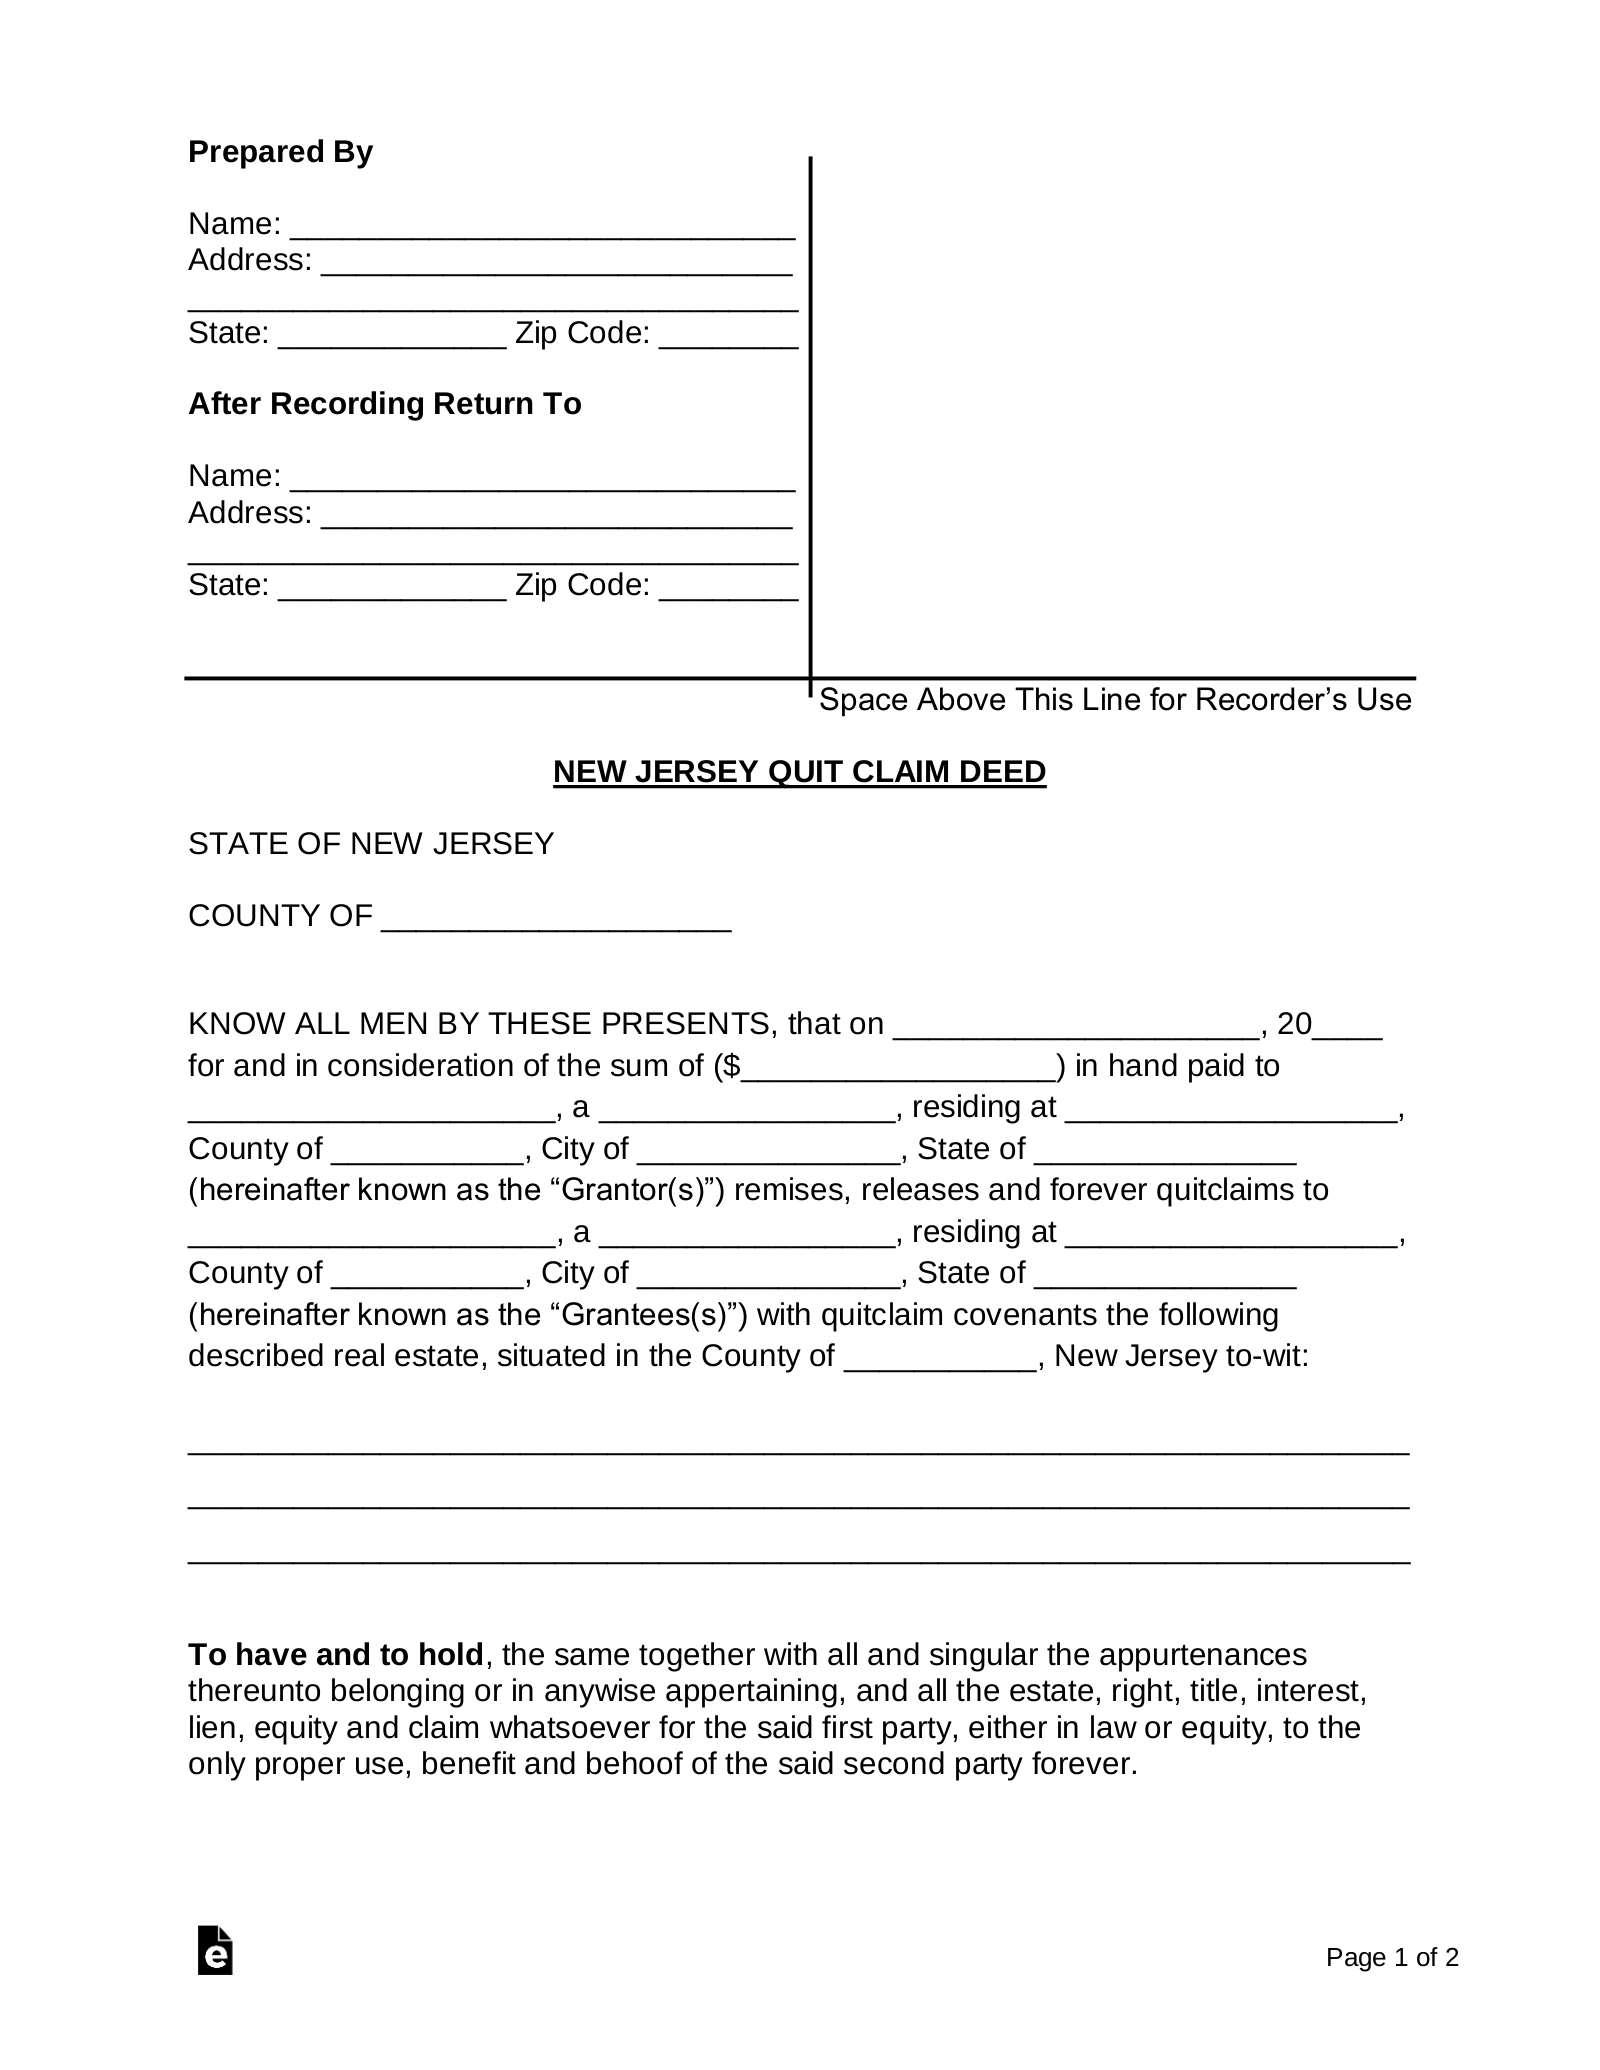 quit claim deed form nj  Free New Jersey Quit Claim Deed Form - PDF | Word | eForms ...